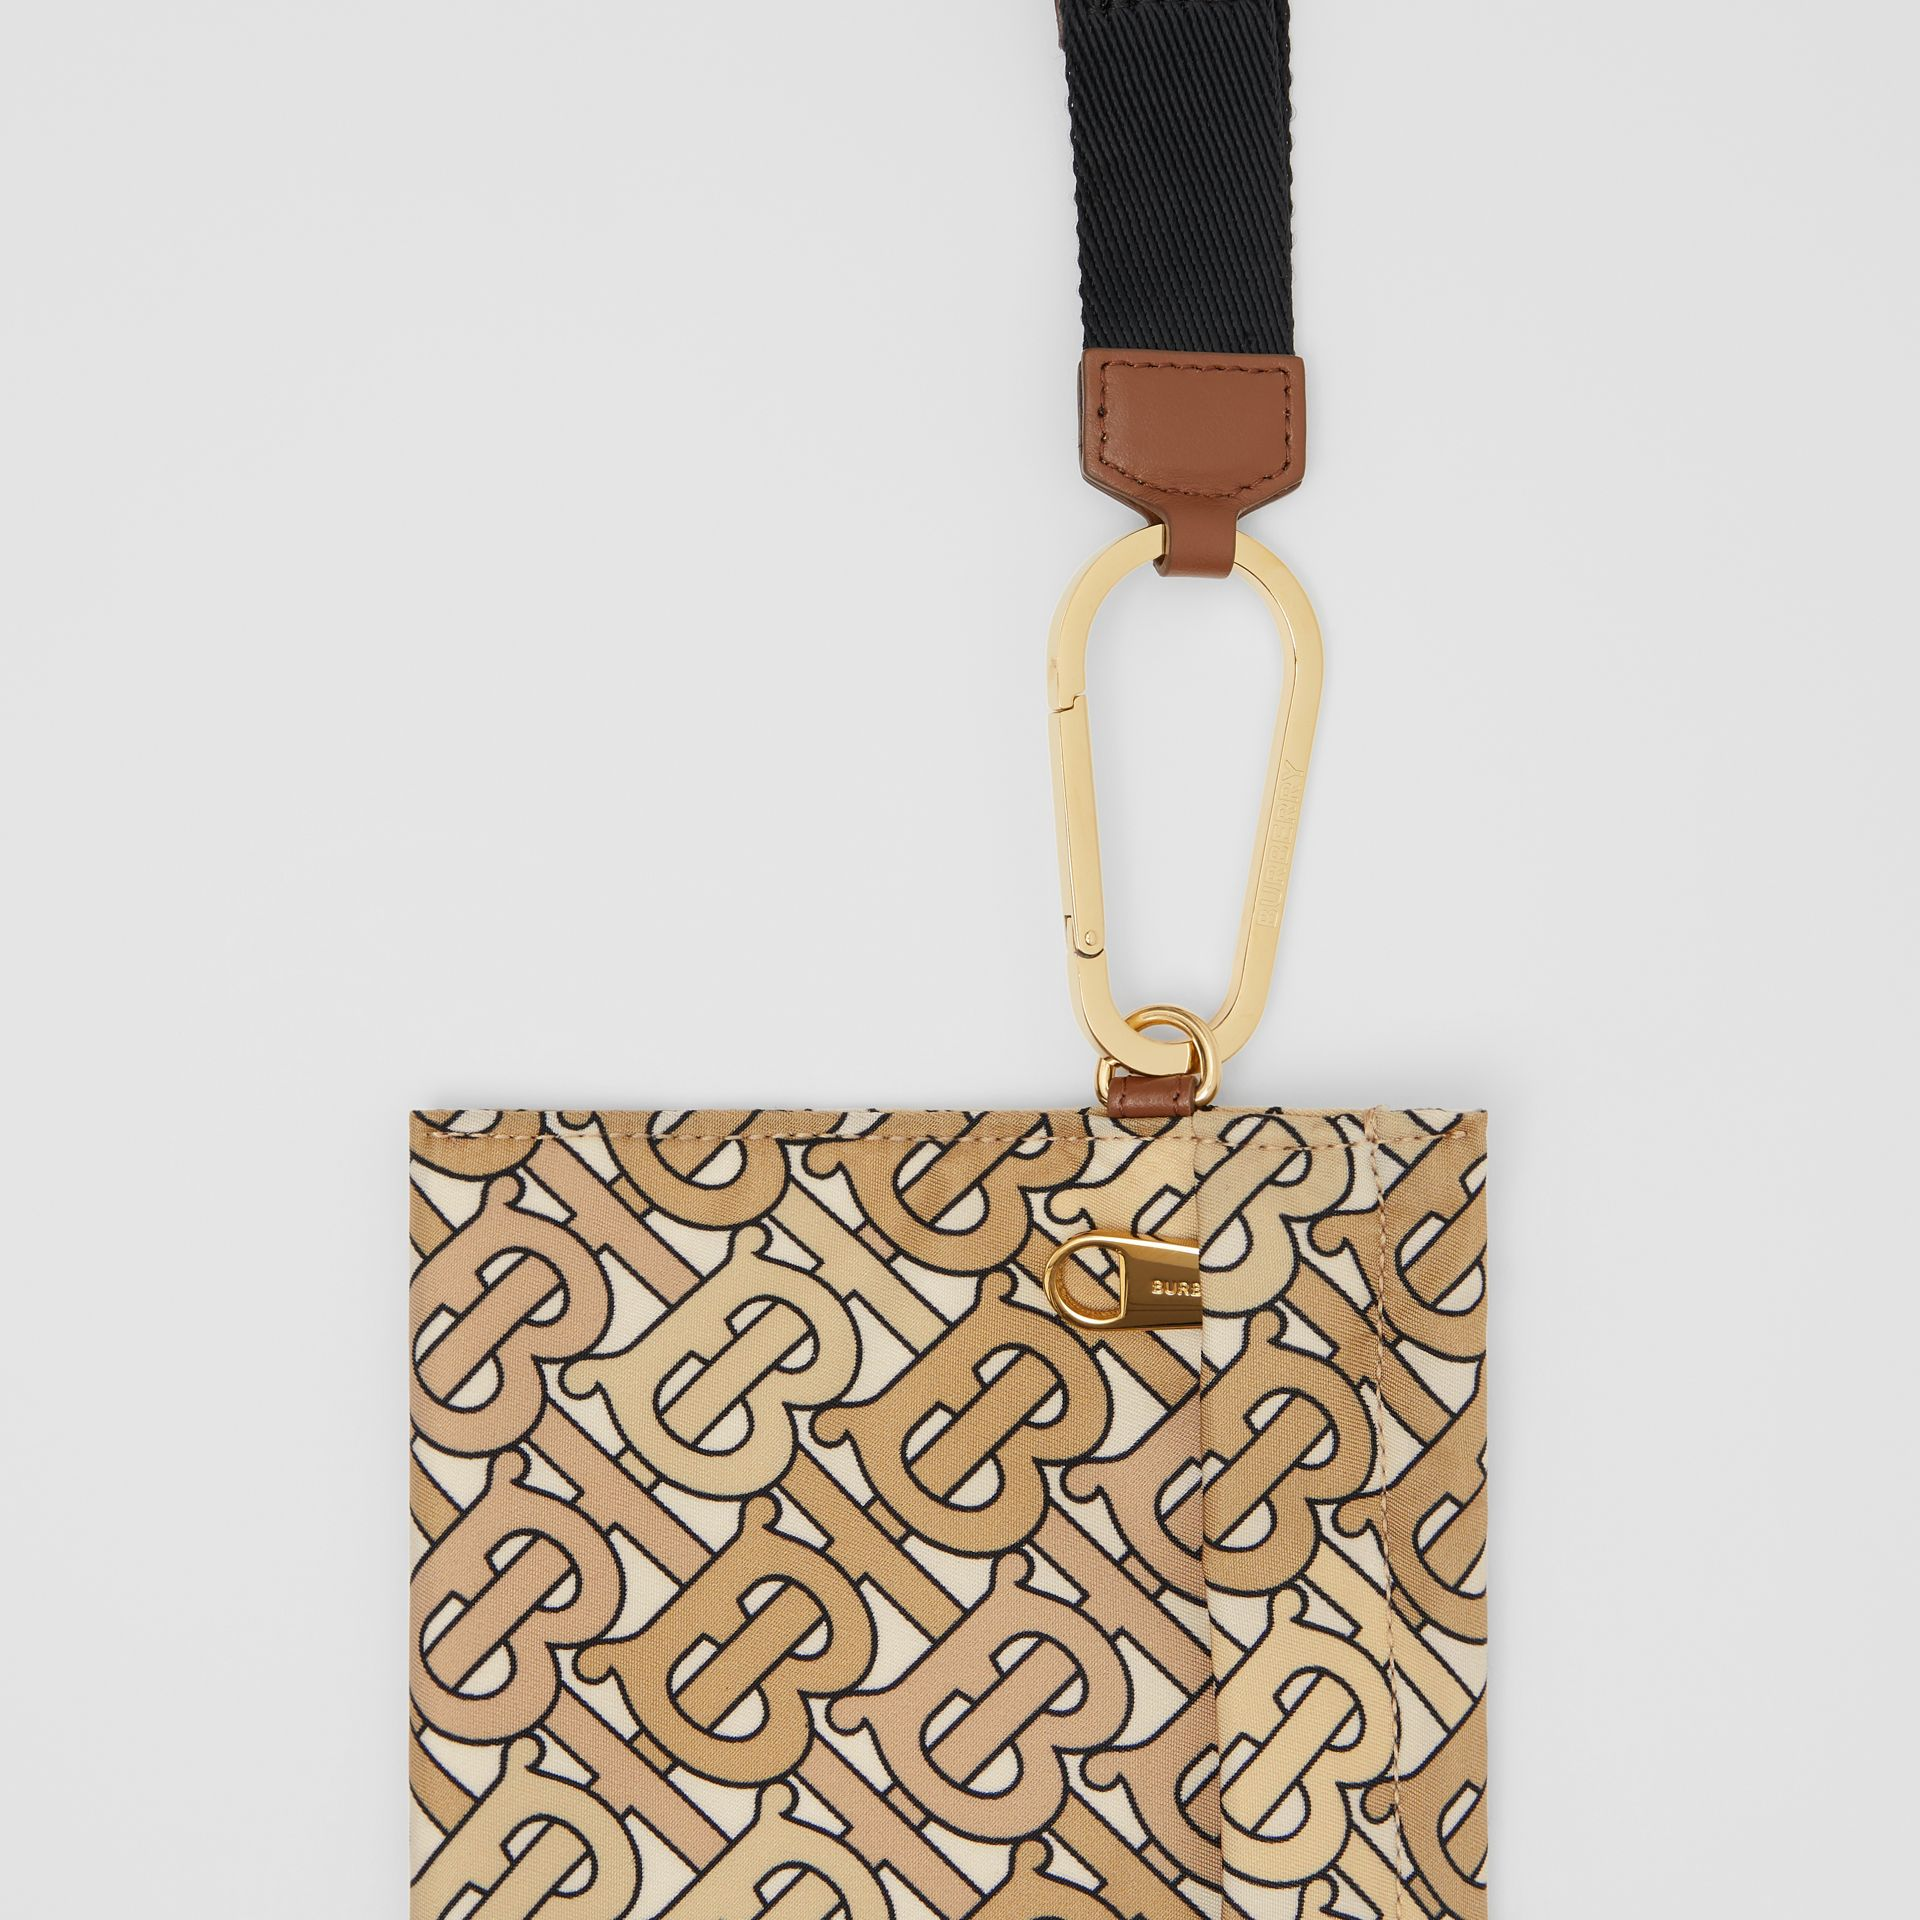 Monogram Print Nylon Zip Pouch in Beige - Women | Burberry - gallery image 1